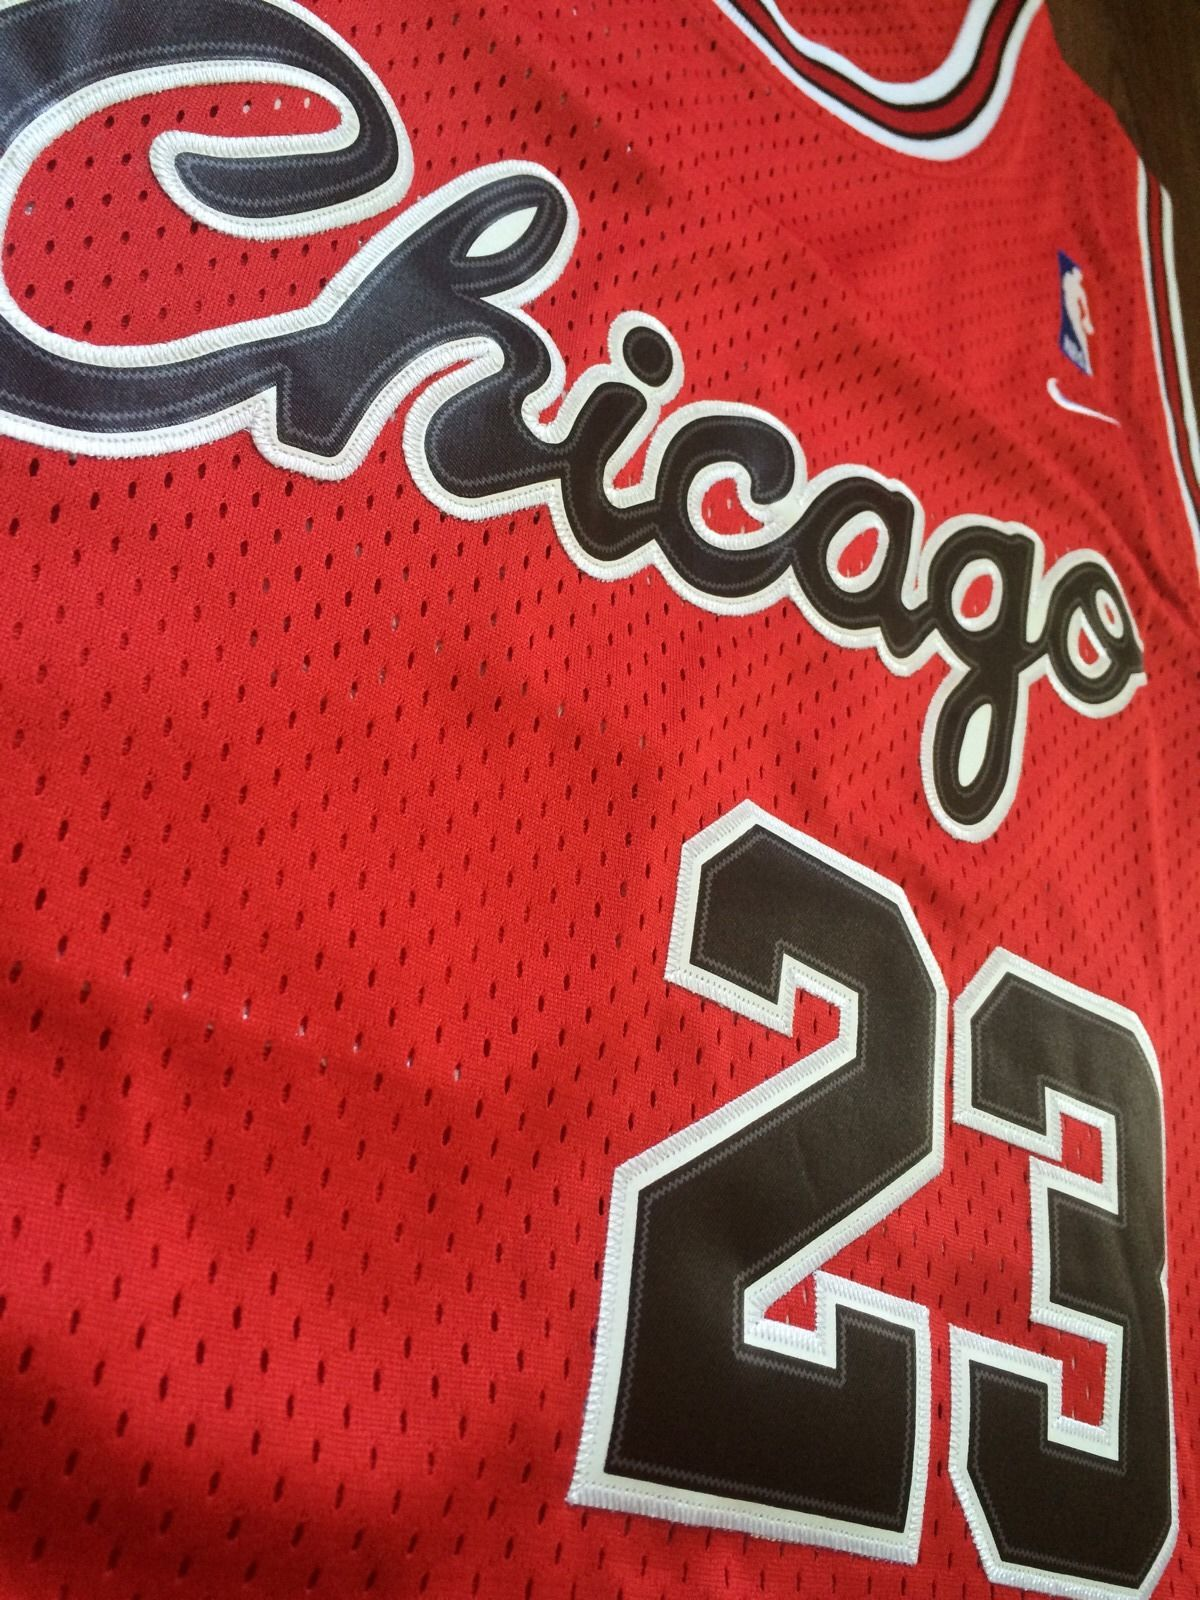 low priced bf32e 7b3d7 Vintage Gear: Nike Michael Jordan Bulls Rookie Jersey - Air ...